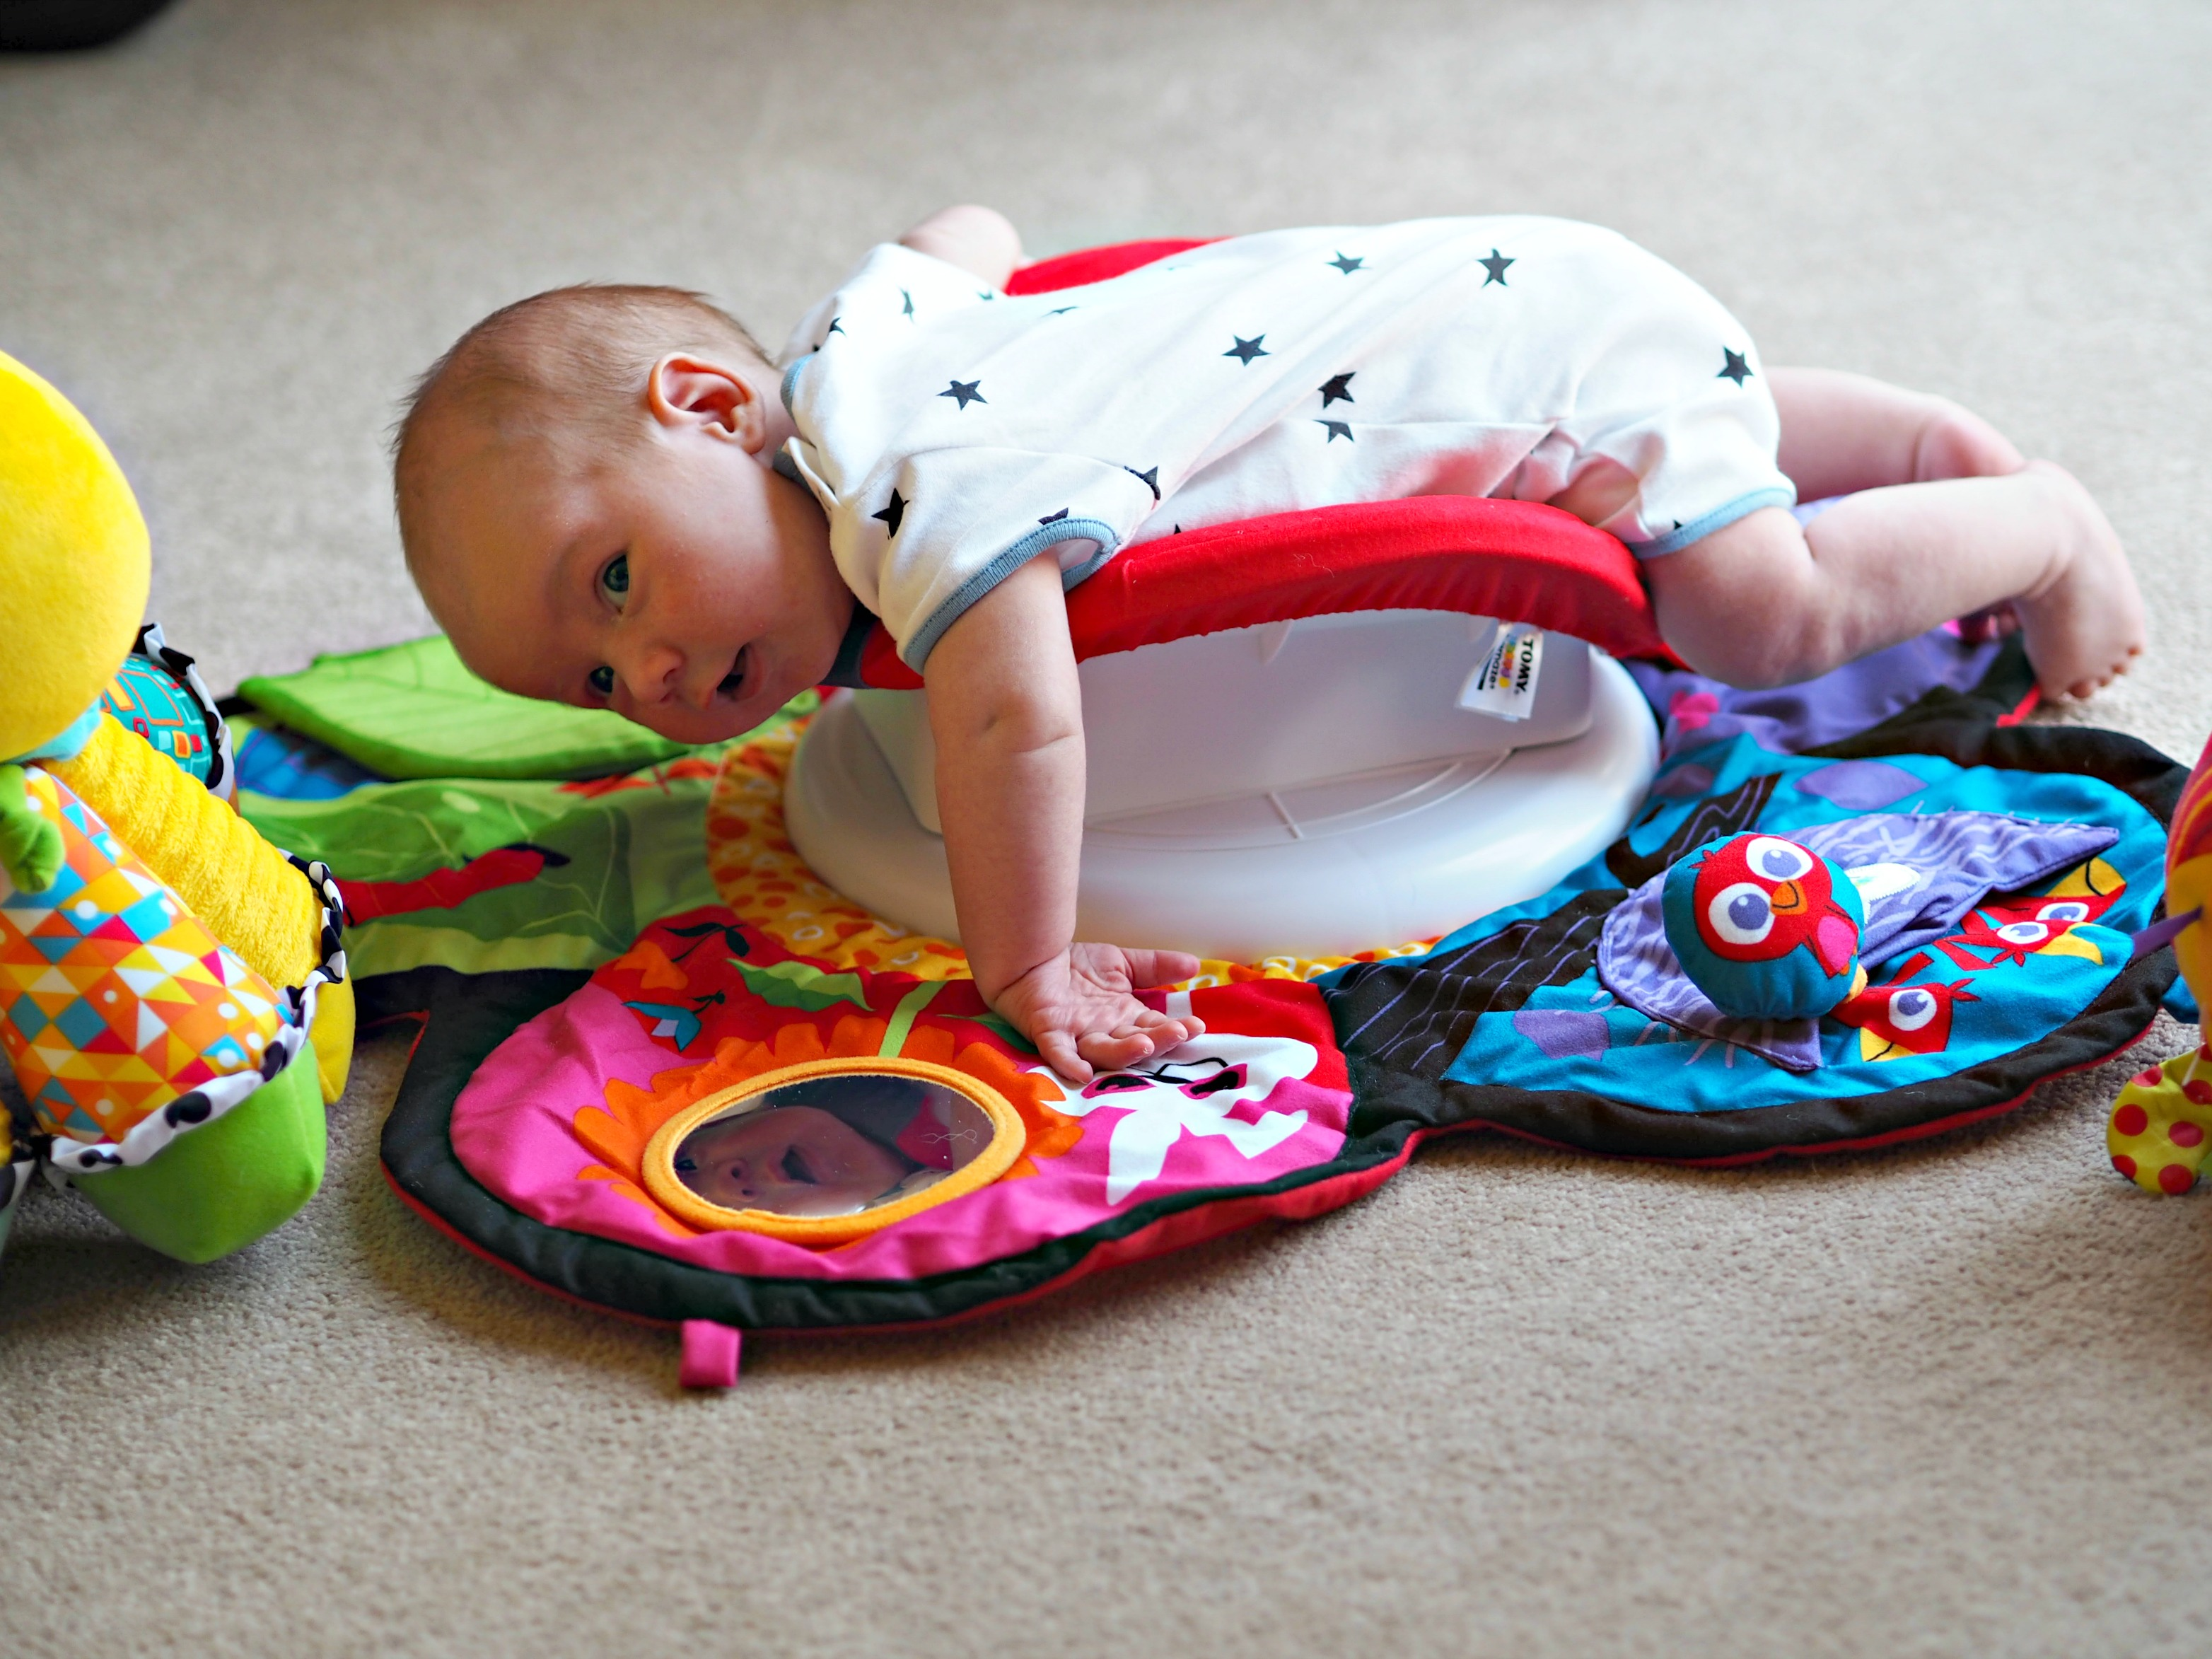 Encouraging Baby's Development with Tomy Lamaze - baby gym